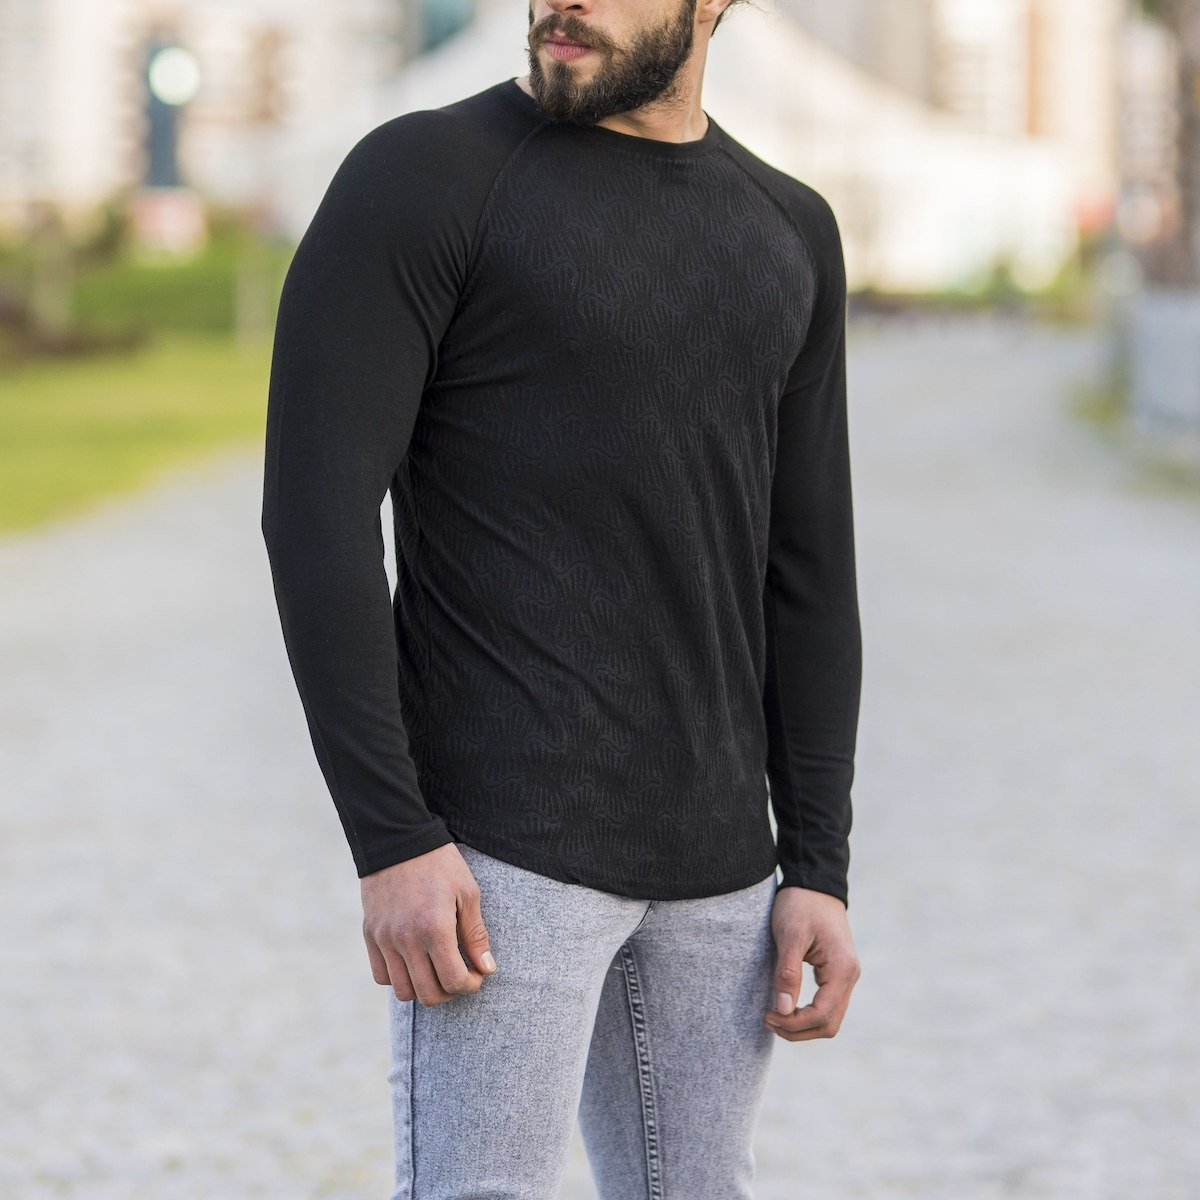 Herren Sweatshirt mit Gravur Optik in schwarz